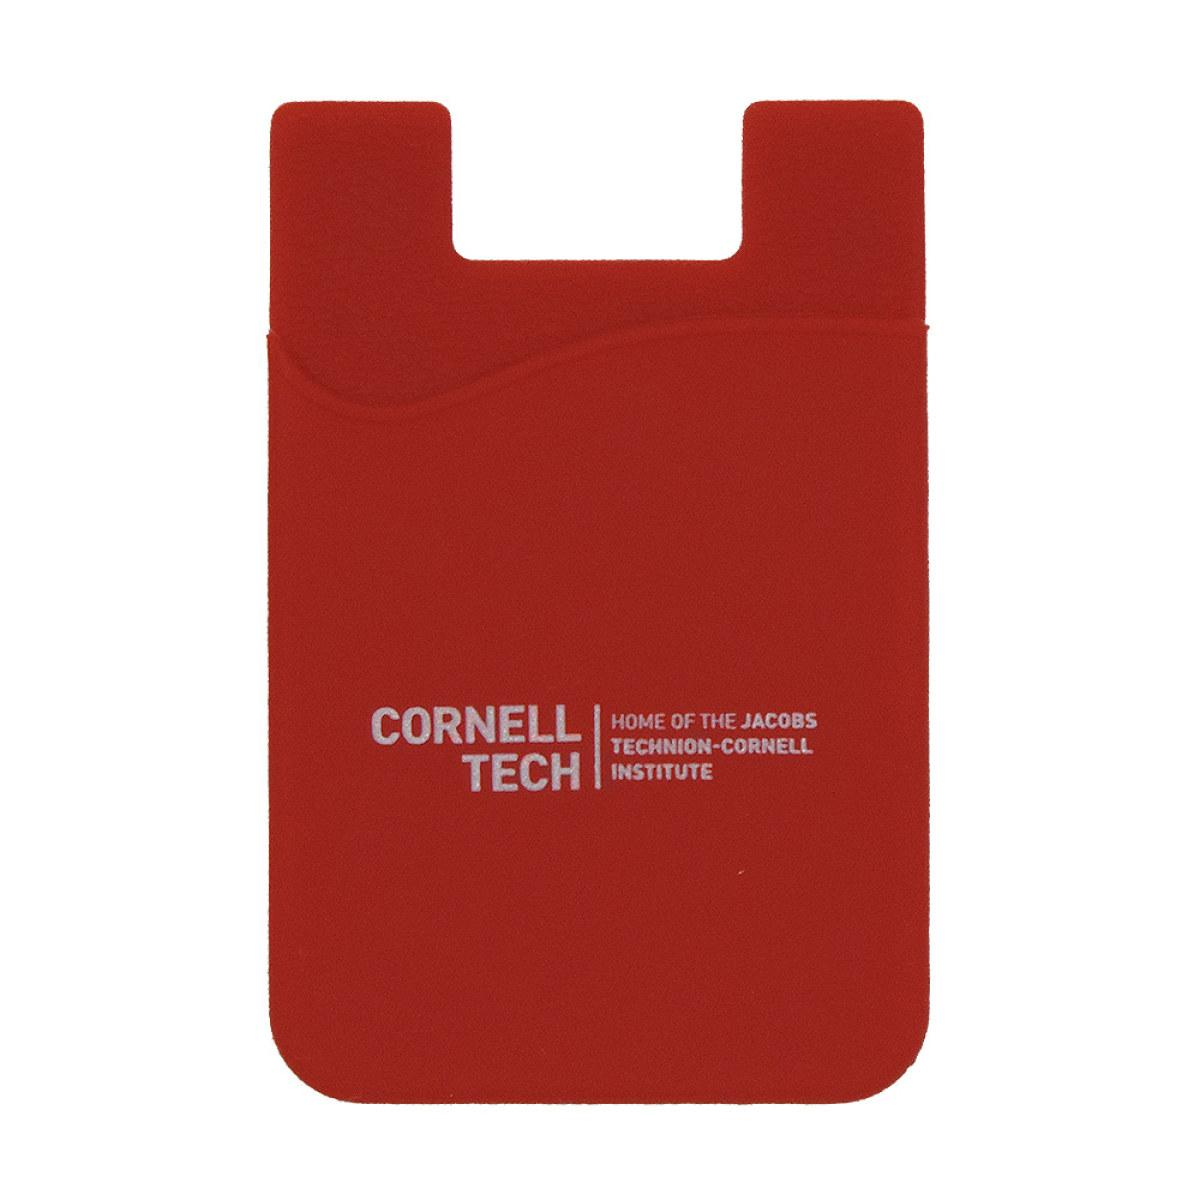 Phone Card Holder >> Cornell Tech Cell Phone Card Holder